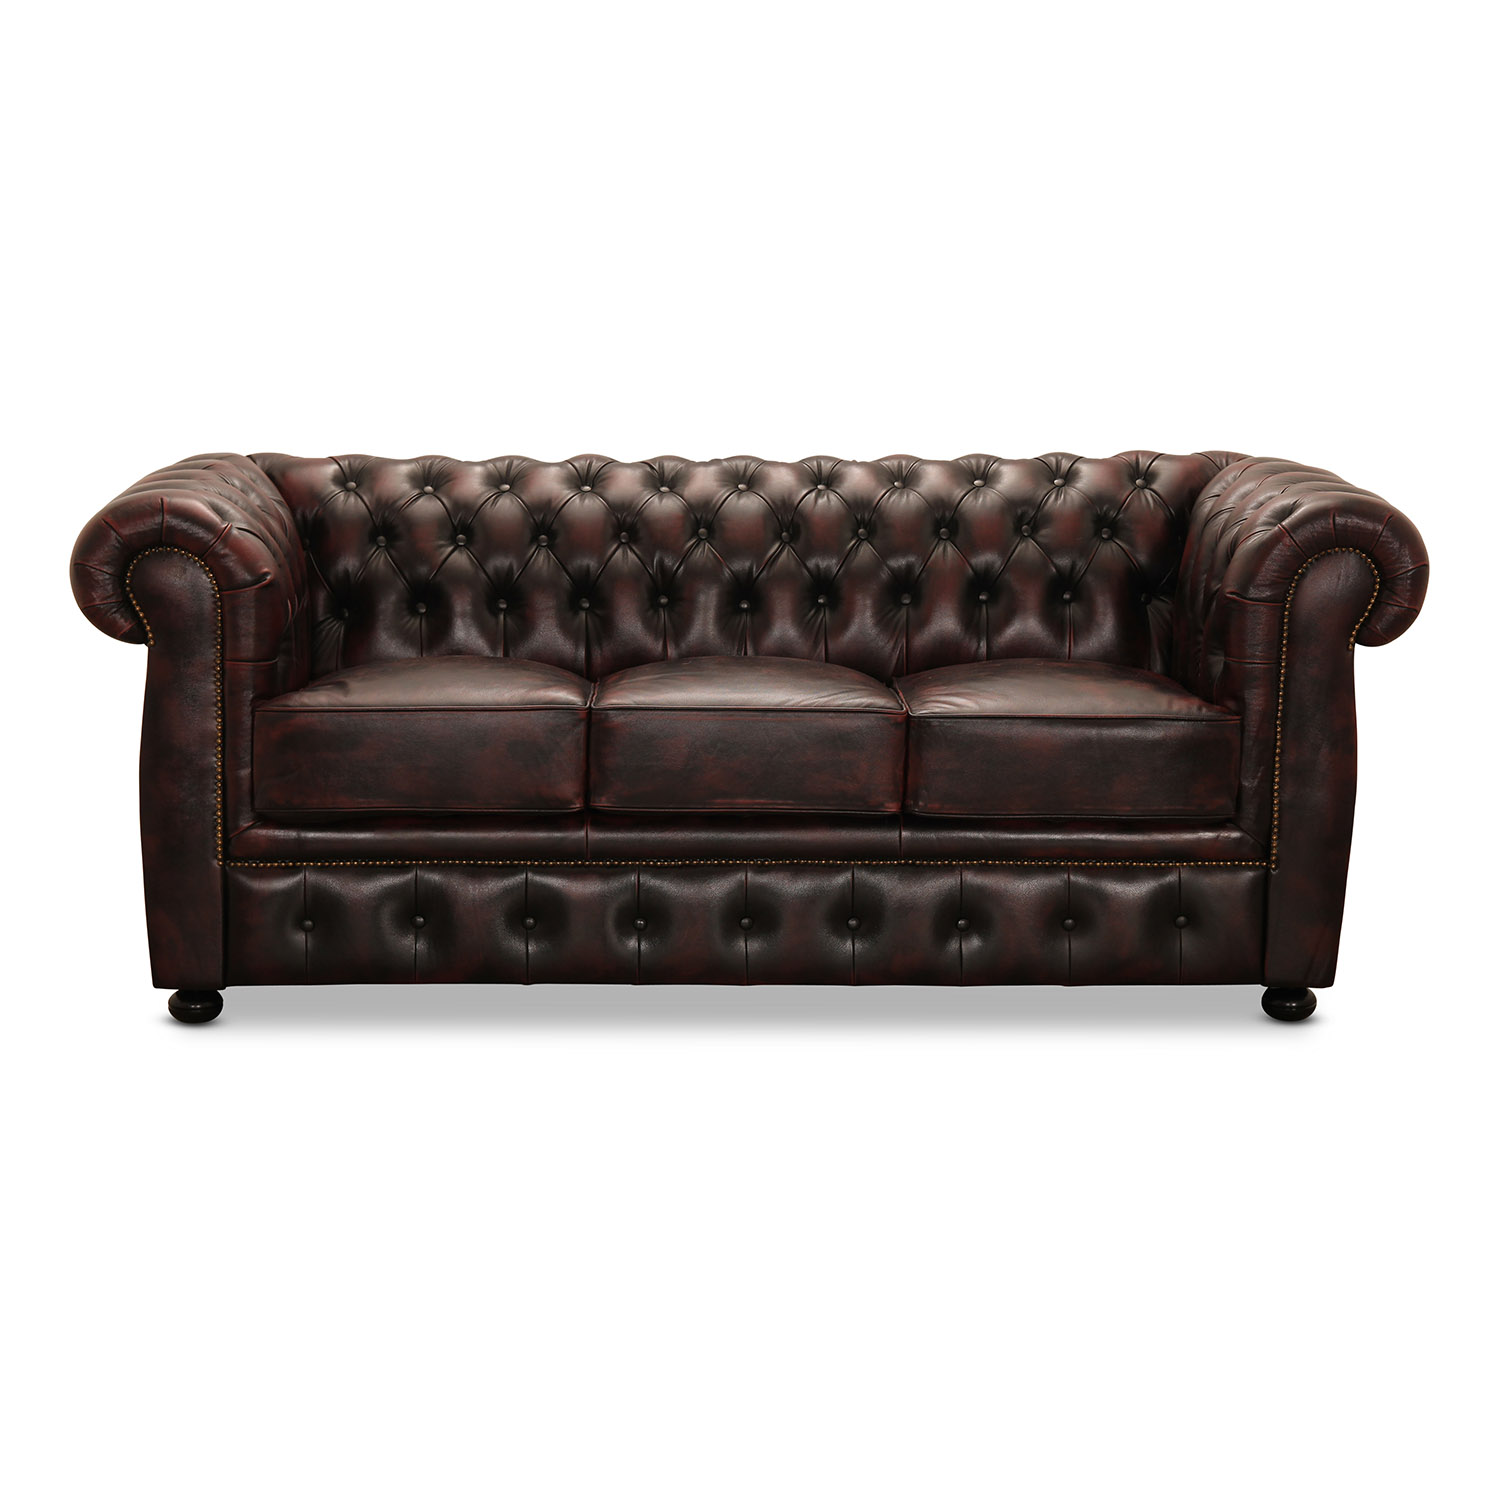 Image of   HAGA Liverpool 3 chesterfield sofa - oxblod læder